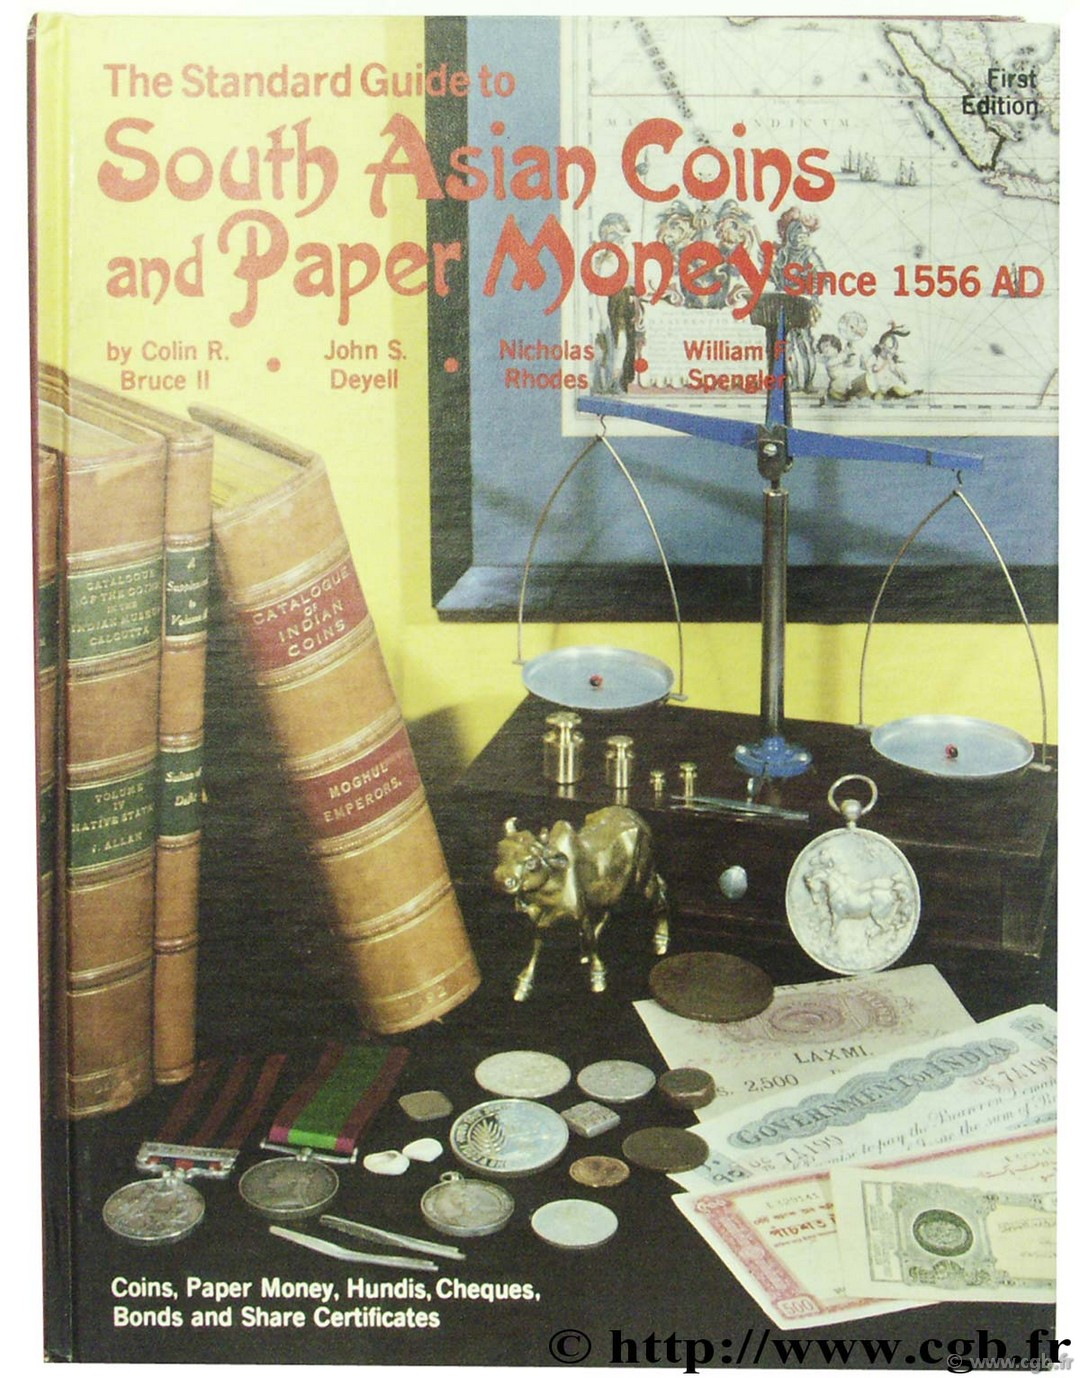 The Standard Guide to South Asian Coins and Paper Money since 1556 AD BRUCE II C.-R., DEYELL J.-S., RHODES N., SPENGLER W.-F.